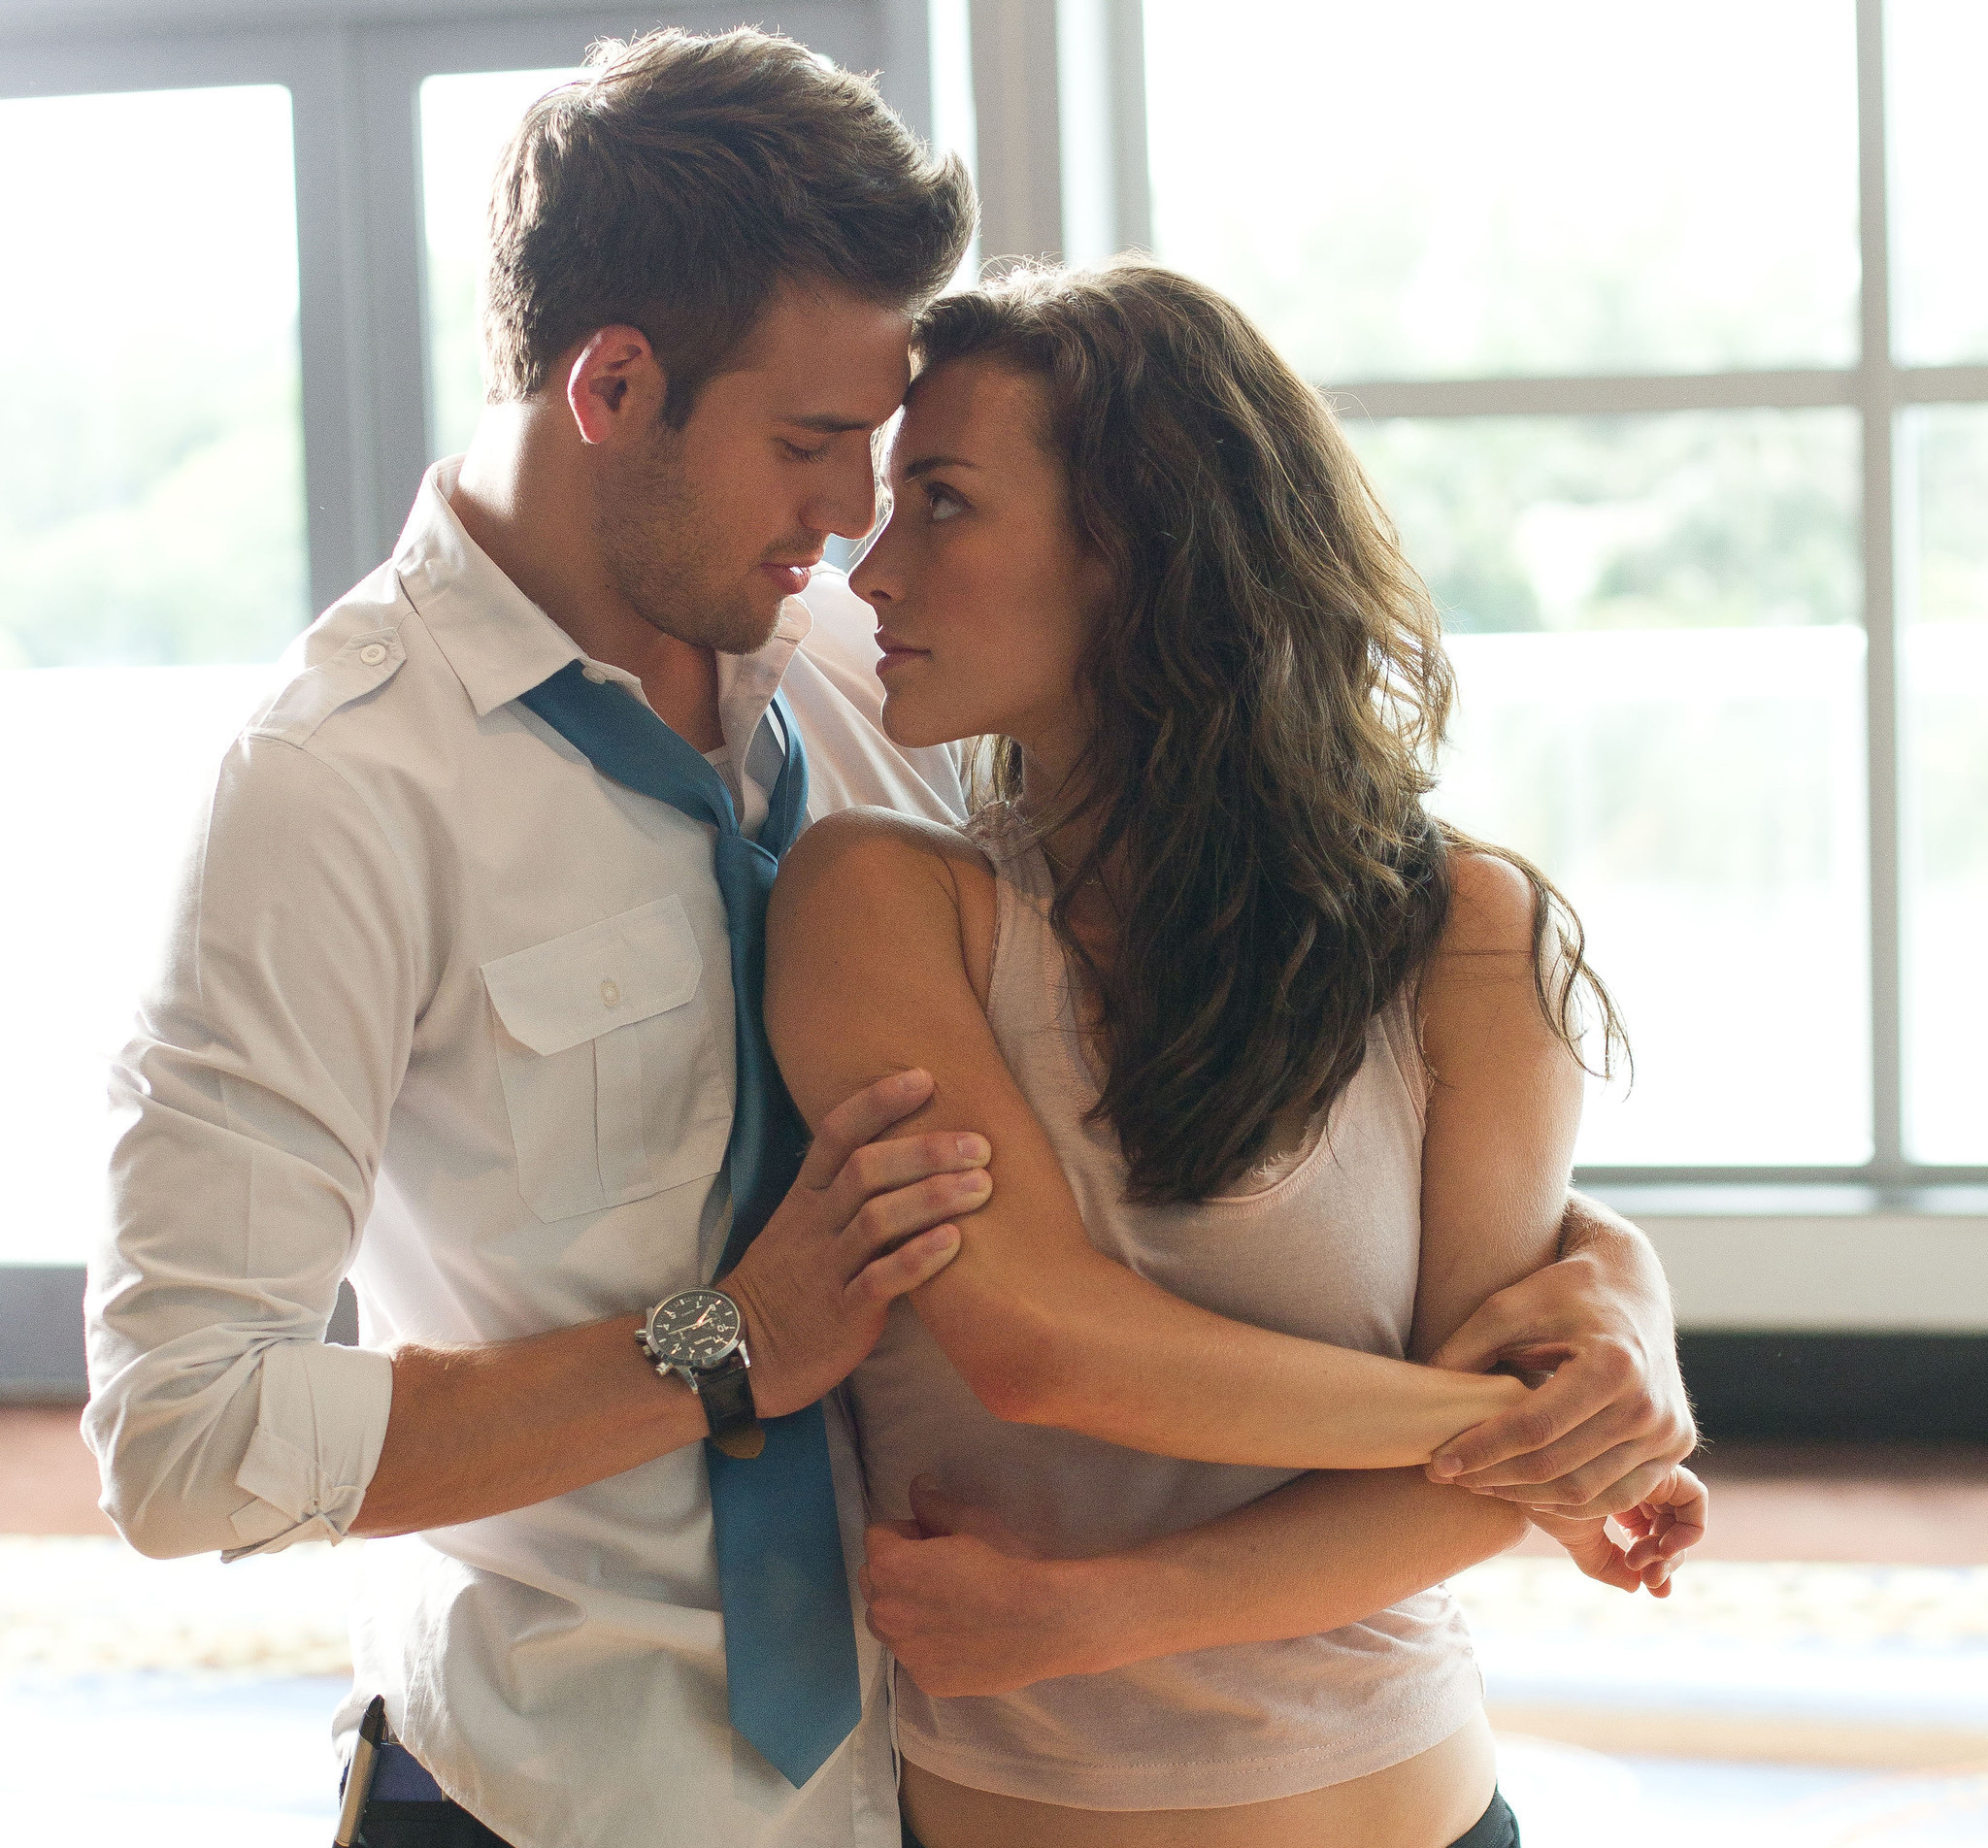 ryan guzman and kathryn mccormick relationship problems